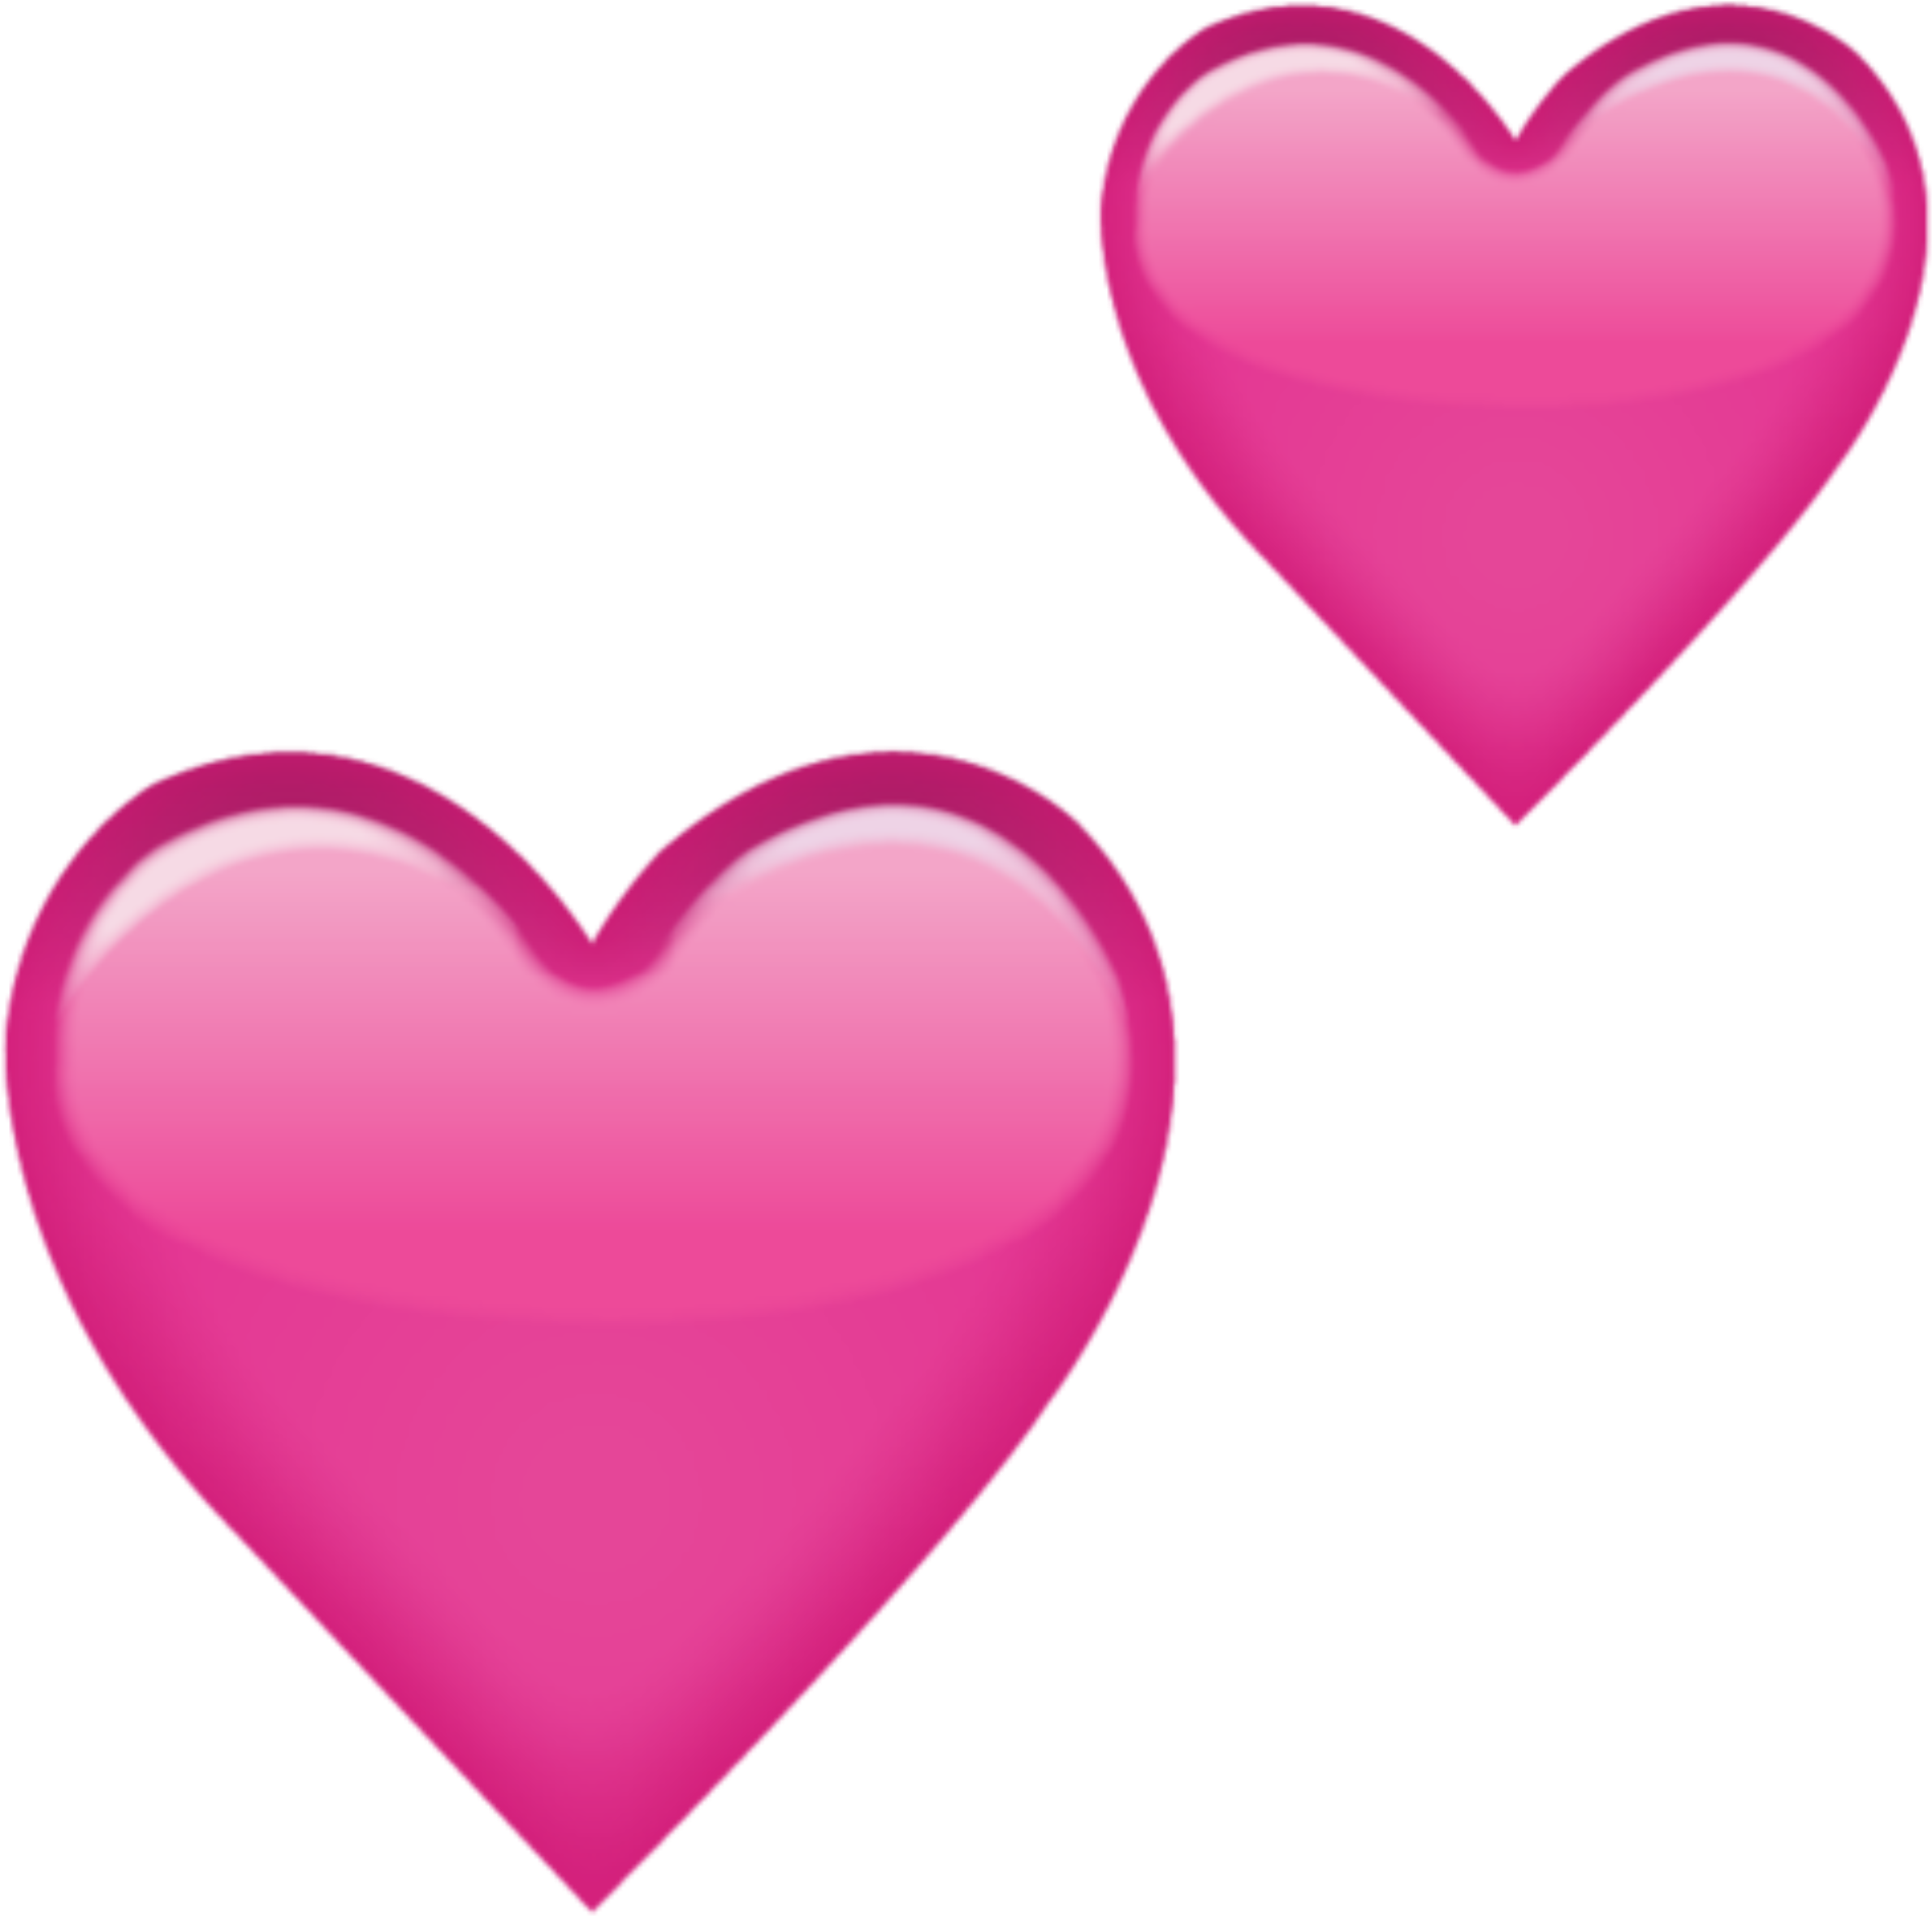 Download Two Pink Hearts Emoji Icon Emoji Island Wish Pink Heart Emoji Png Clipart Full Size Clipart 580088 Pinclipart